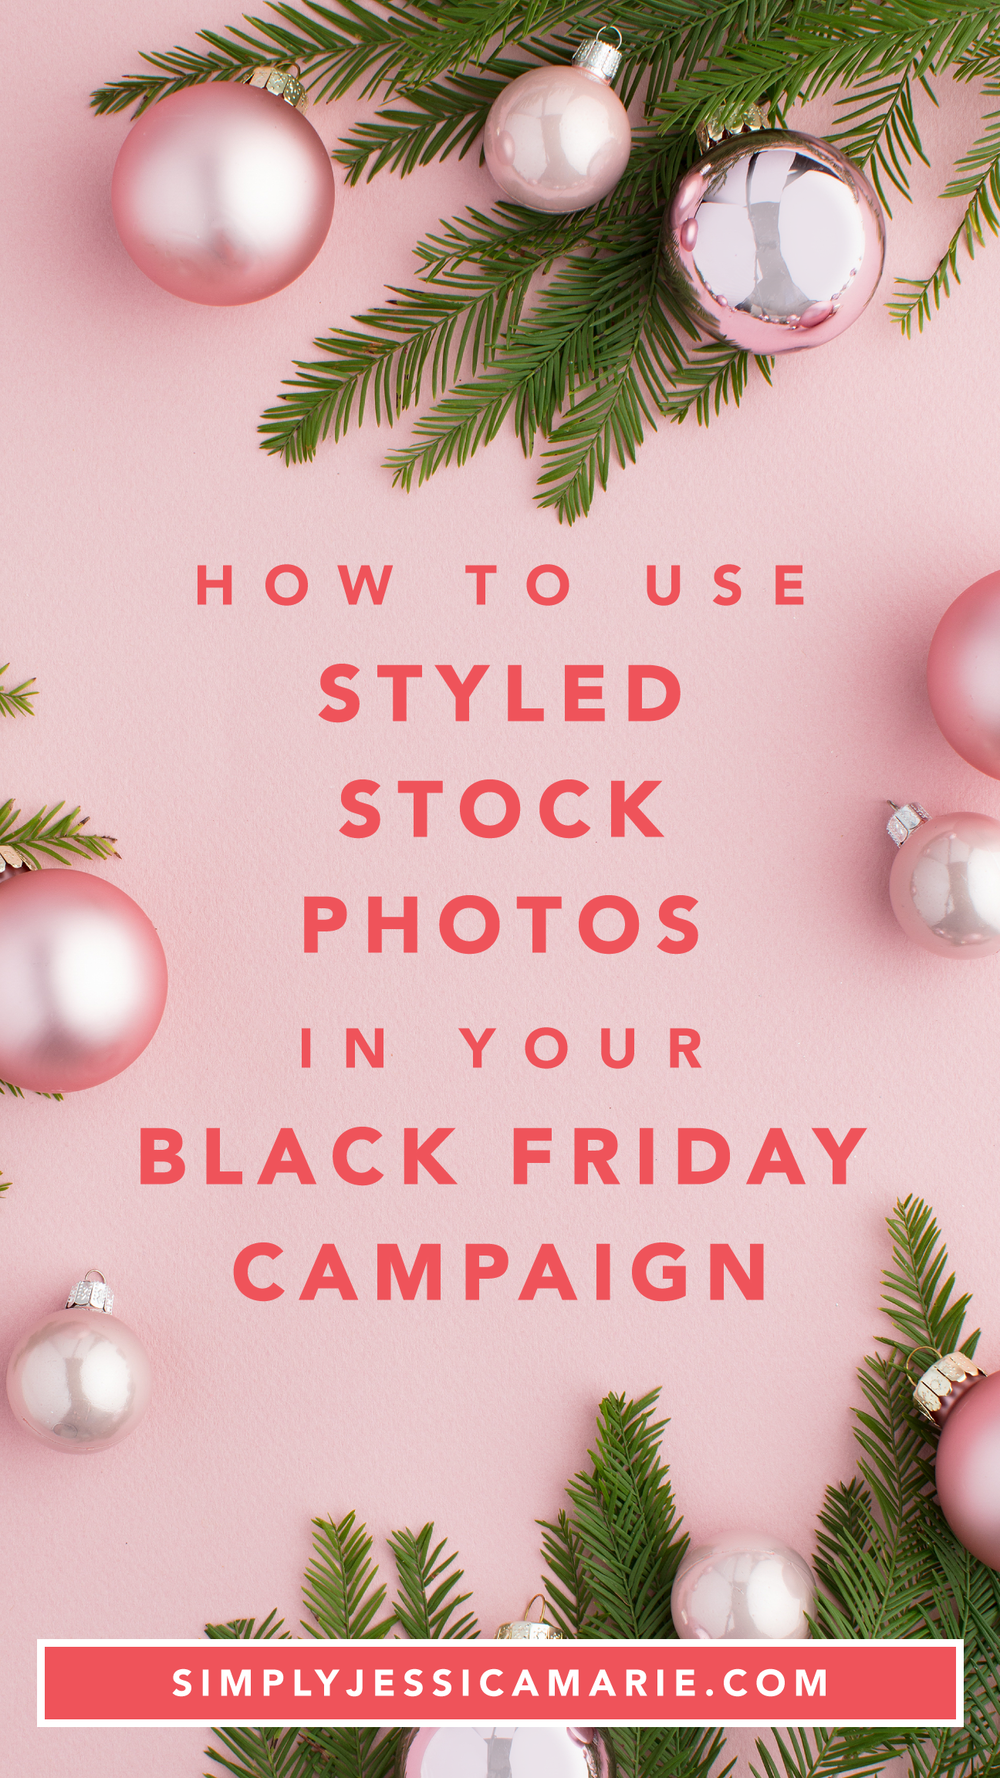 How to use styled stock photos in your black friday campaign | Simply Jessica Marie